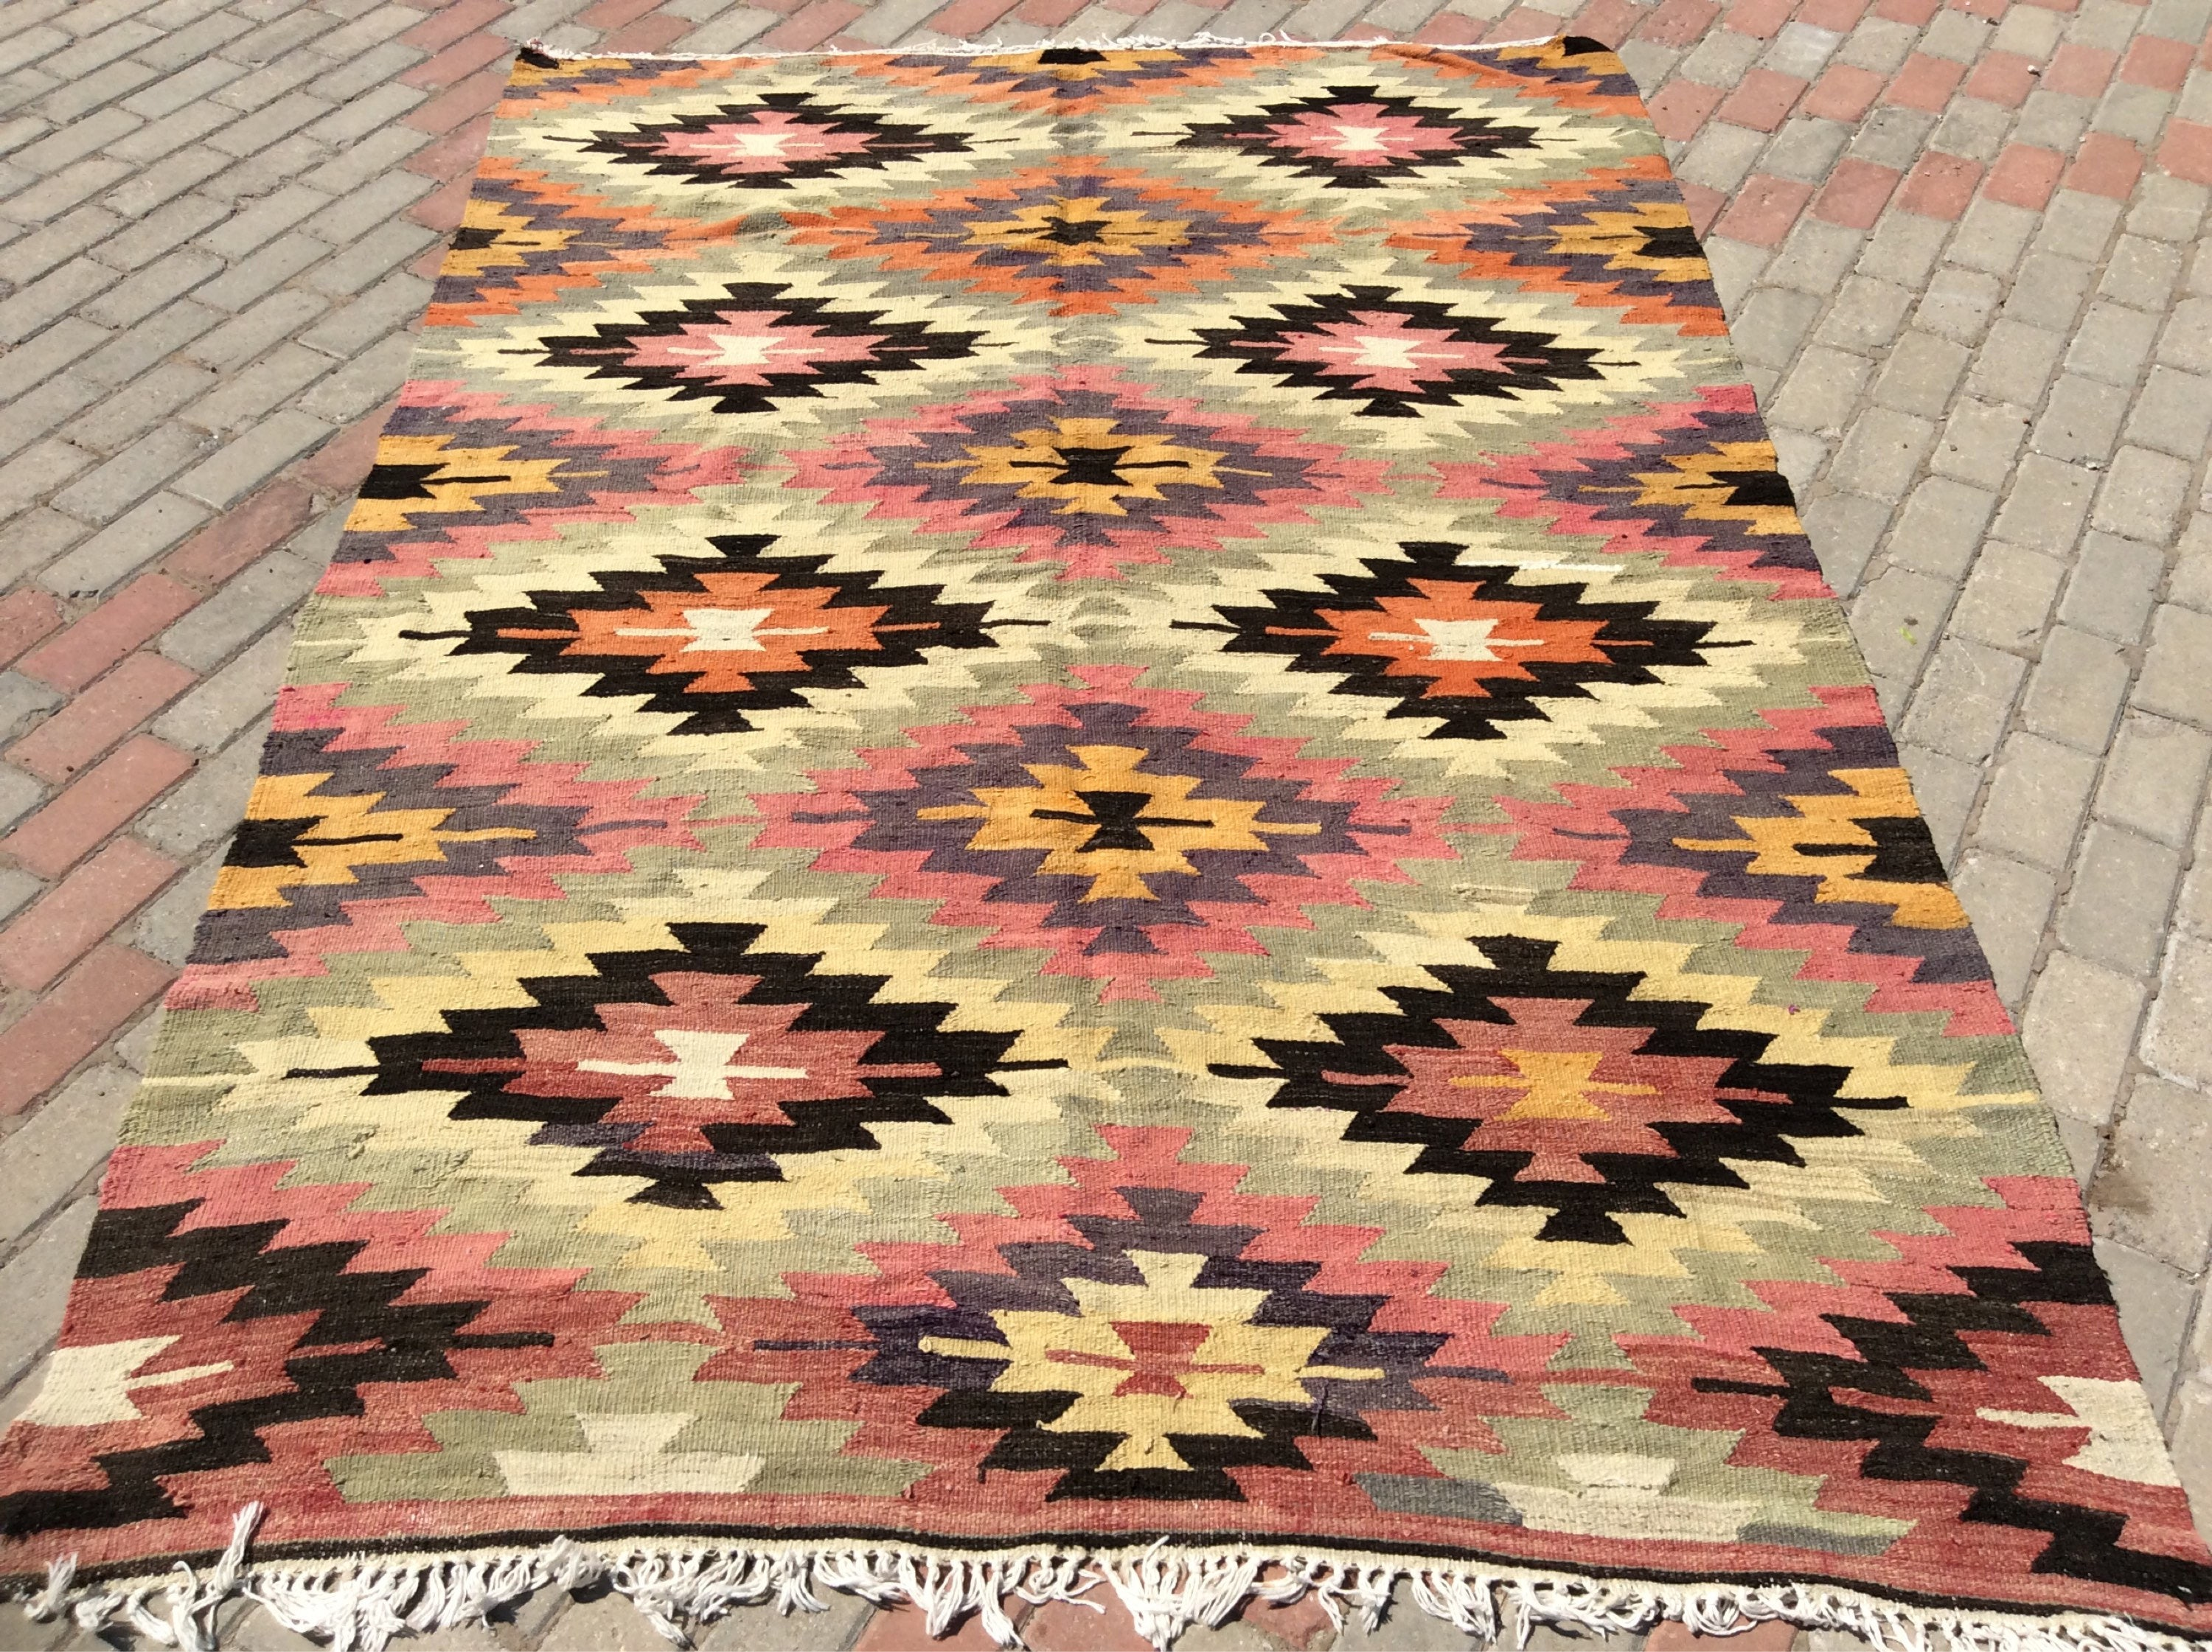 rugs antique p fullxfull il weave kelim malatya flat turkish kilim or anatolian reyhanli early rug